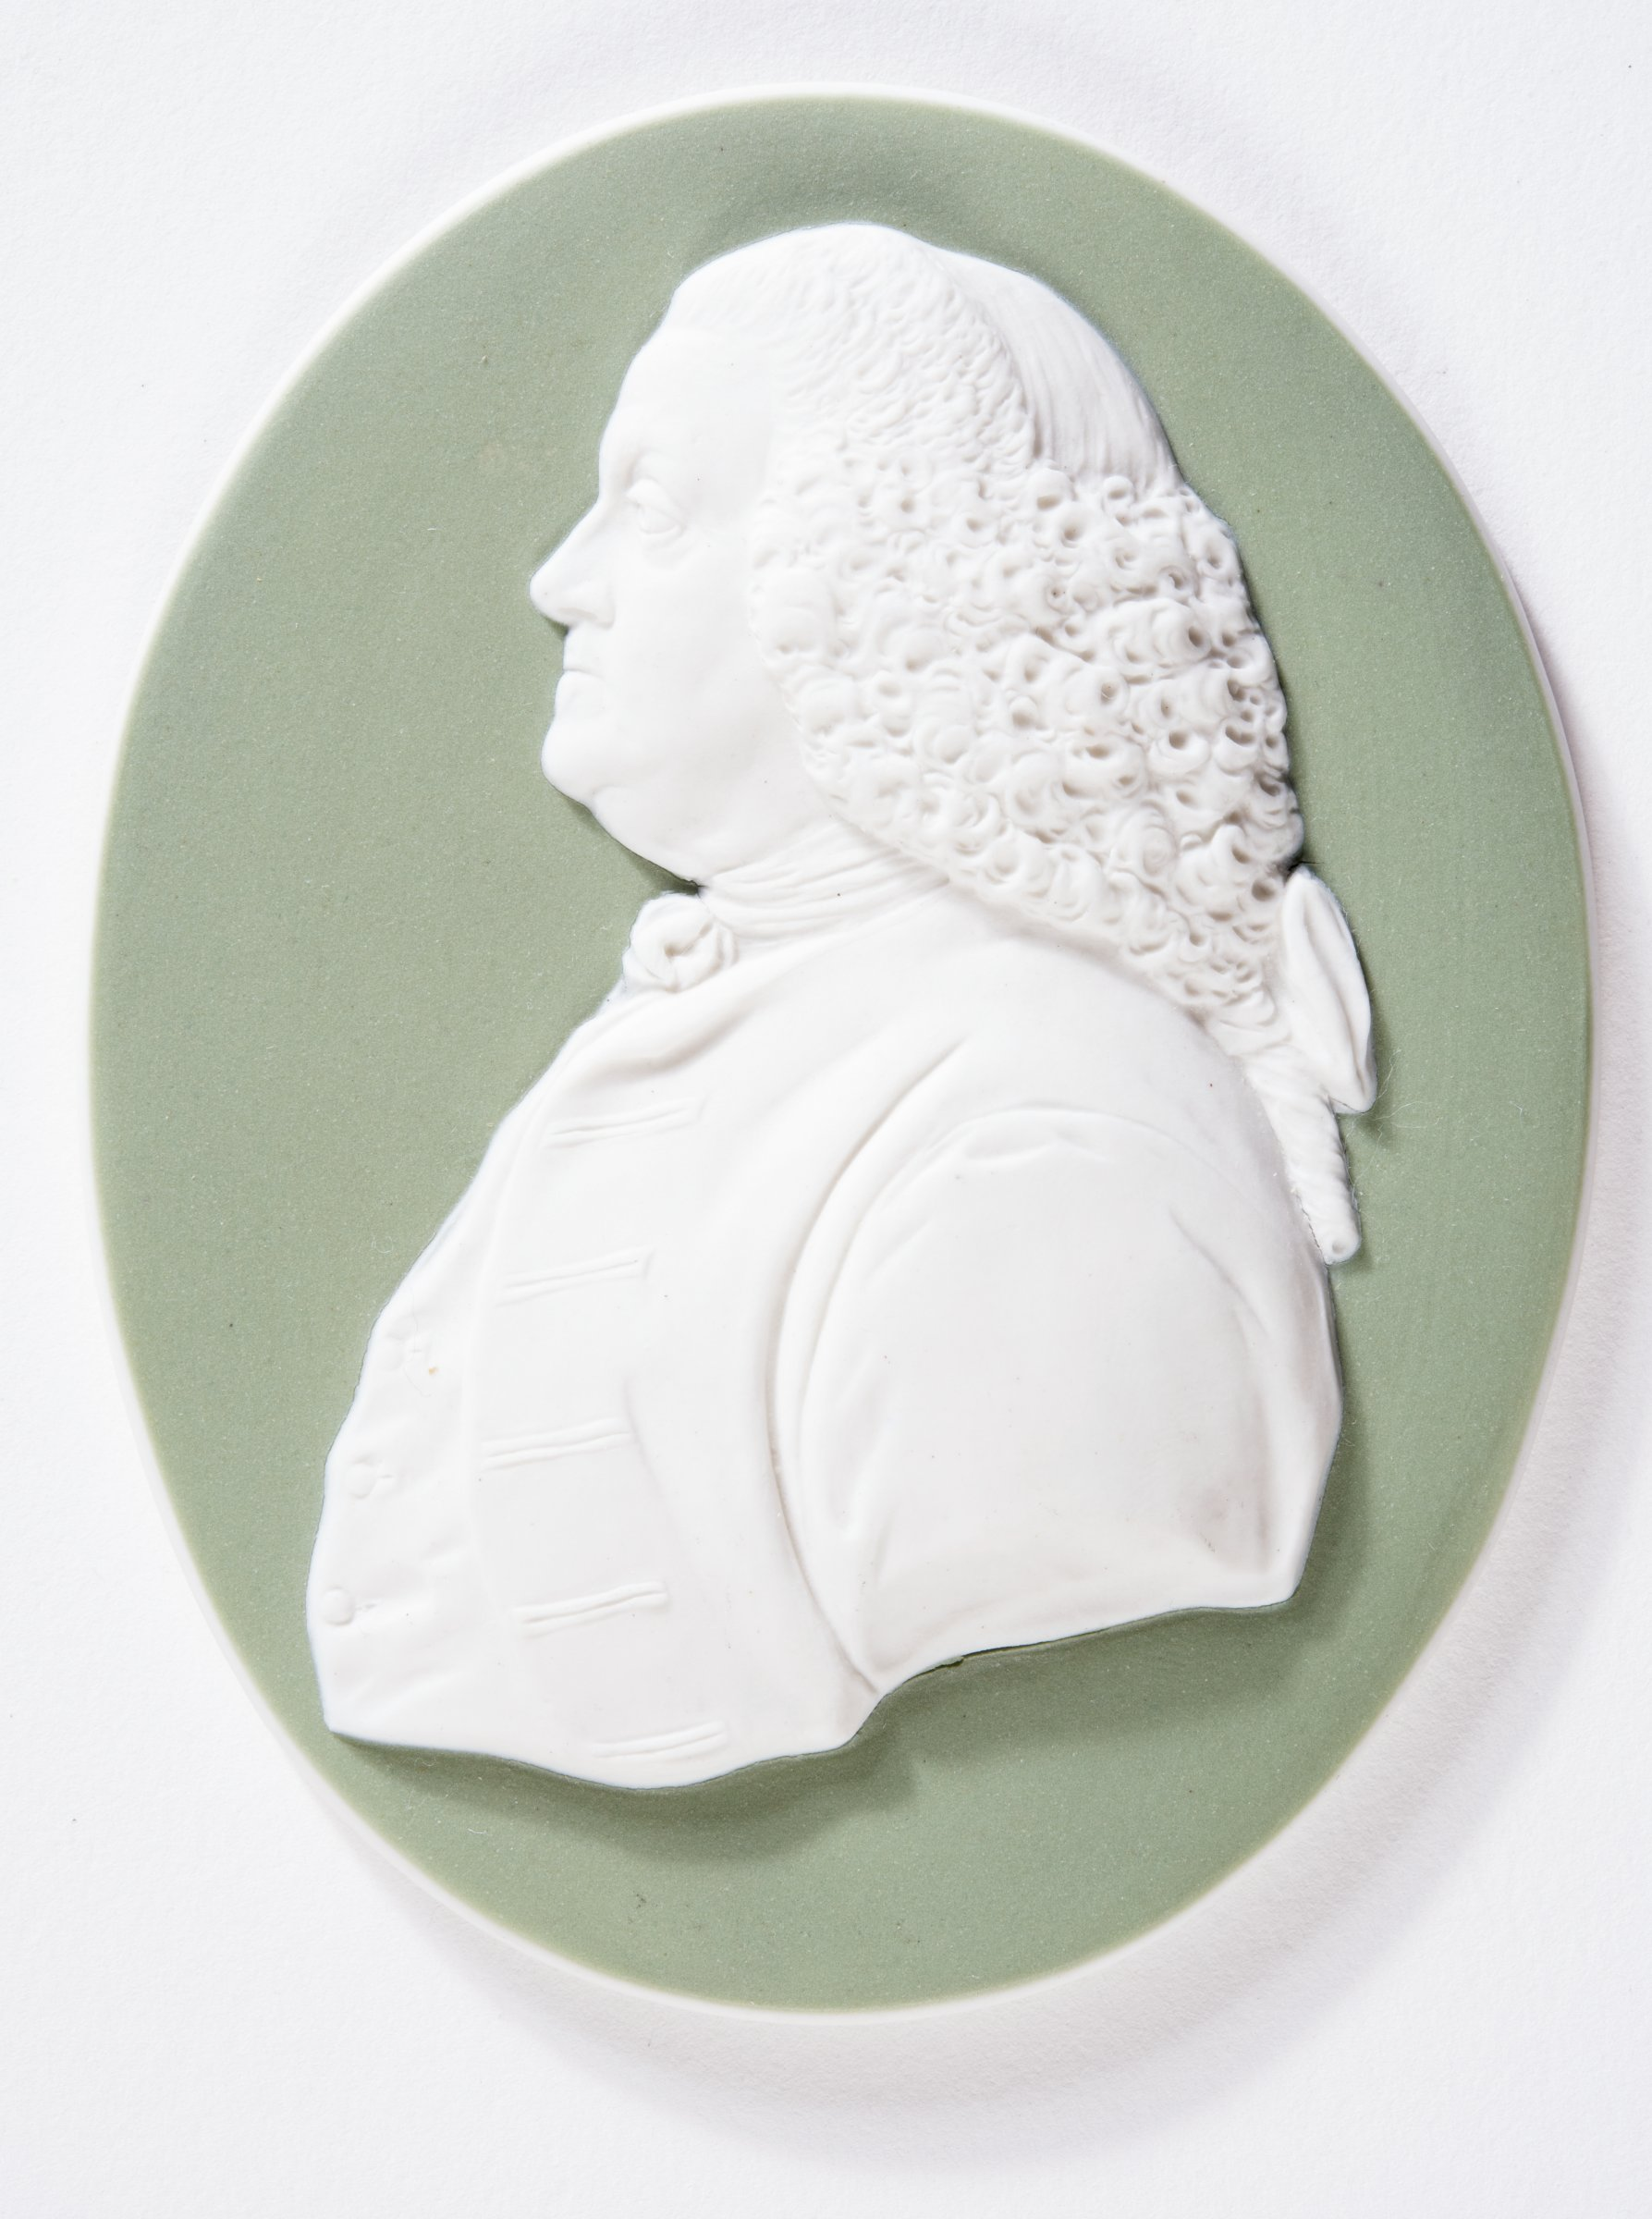 Oval portrait medallion of white jasper with green jasper dip and white relief decoration with the bust of Benjamin Franklin in profile left.